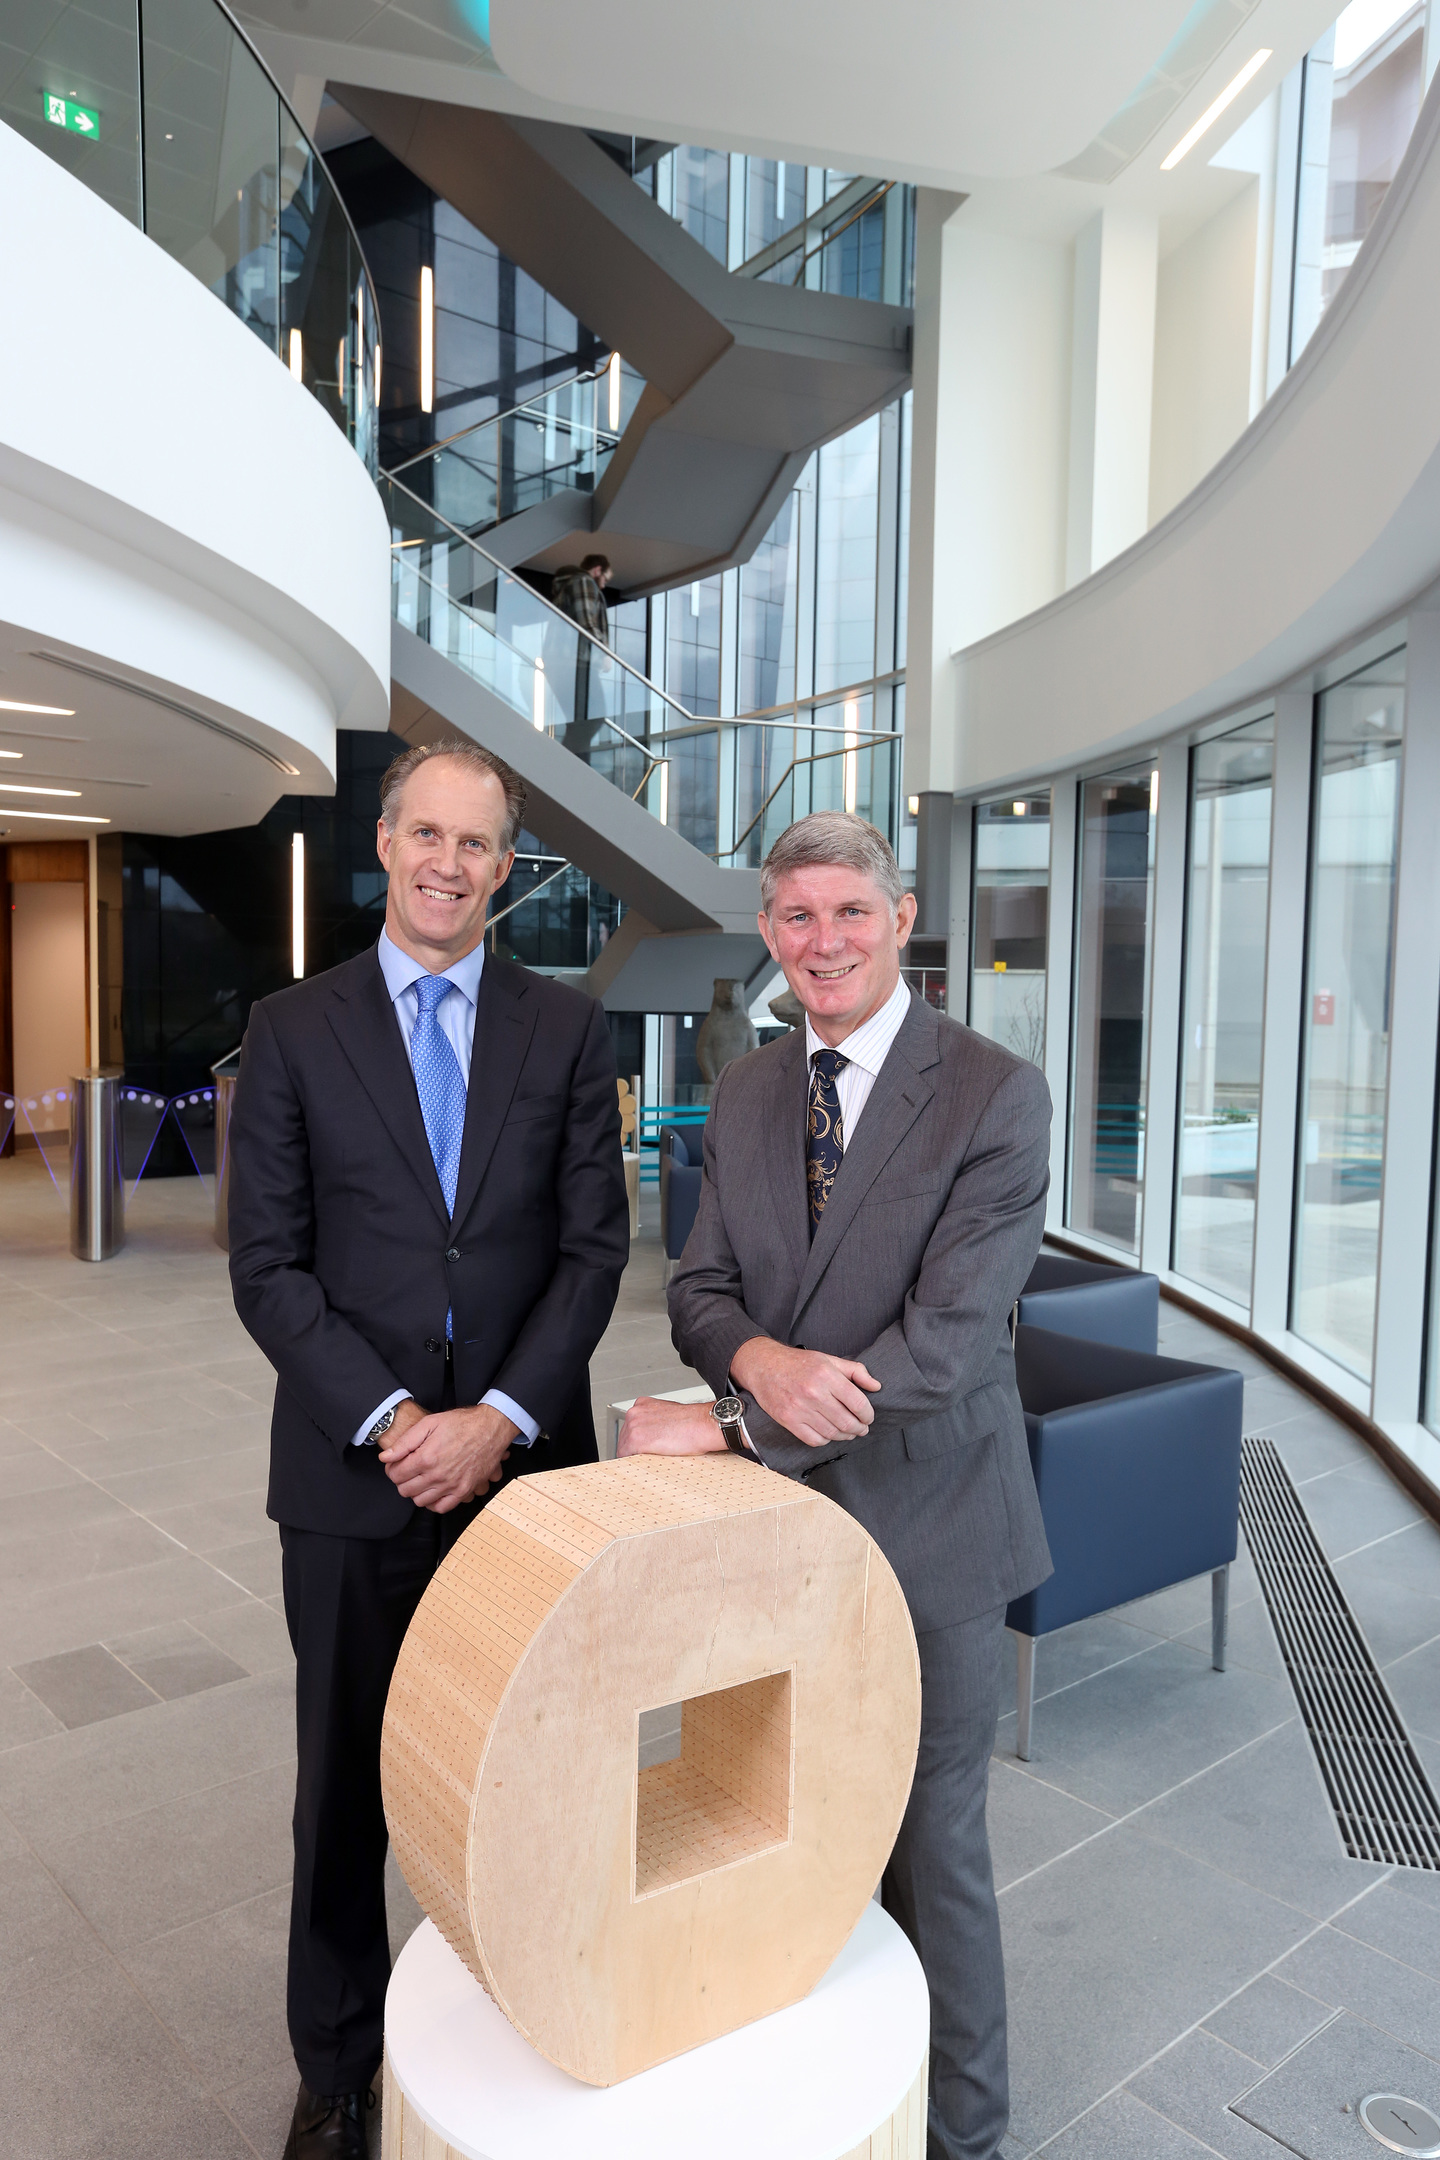 Ruud Zoon, managing director of GDF SUEZ E&P (left) and Rob Buchan, Aberdeen General Manager GDF SUEZ E&P at the new Aberdeen office.